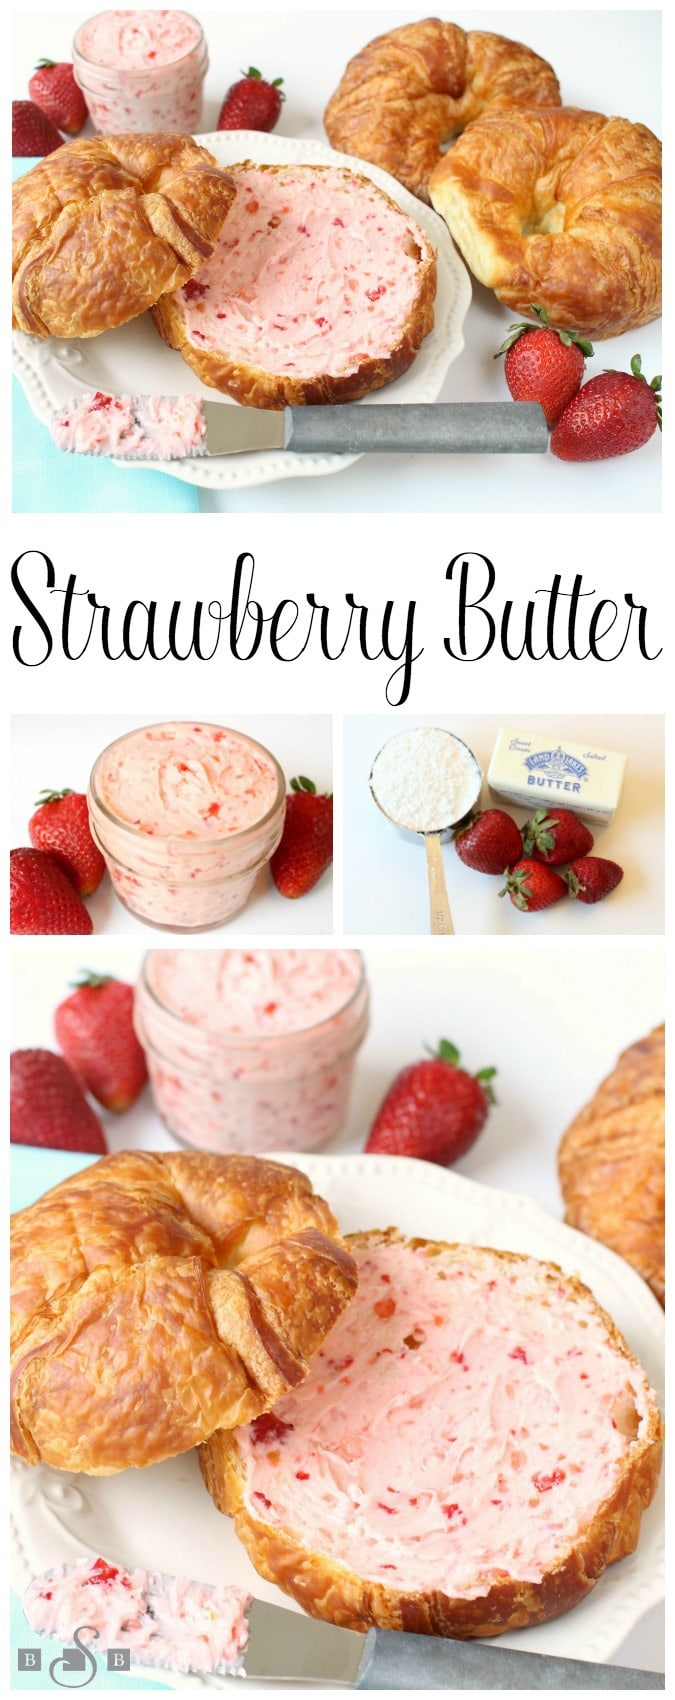 Strawberry Butter is a simple and delicious fresh fruit spread recipe that's great on biscuits, rolls and toast! Just 3 ingredients and only 5 minutes to make this amazing strawberry butter recipe.